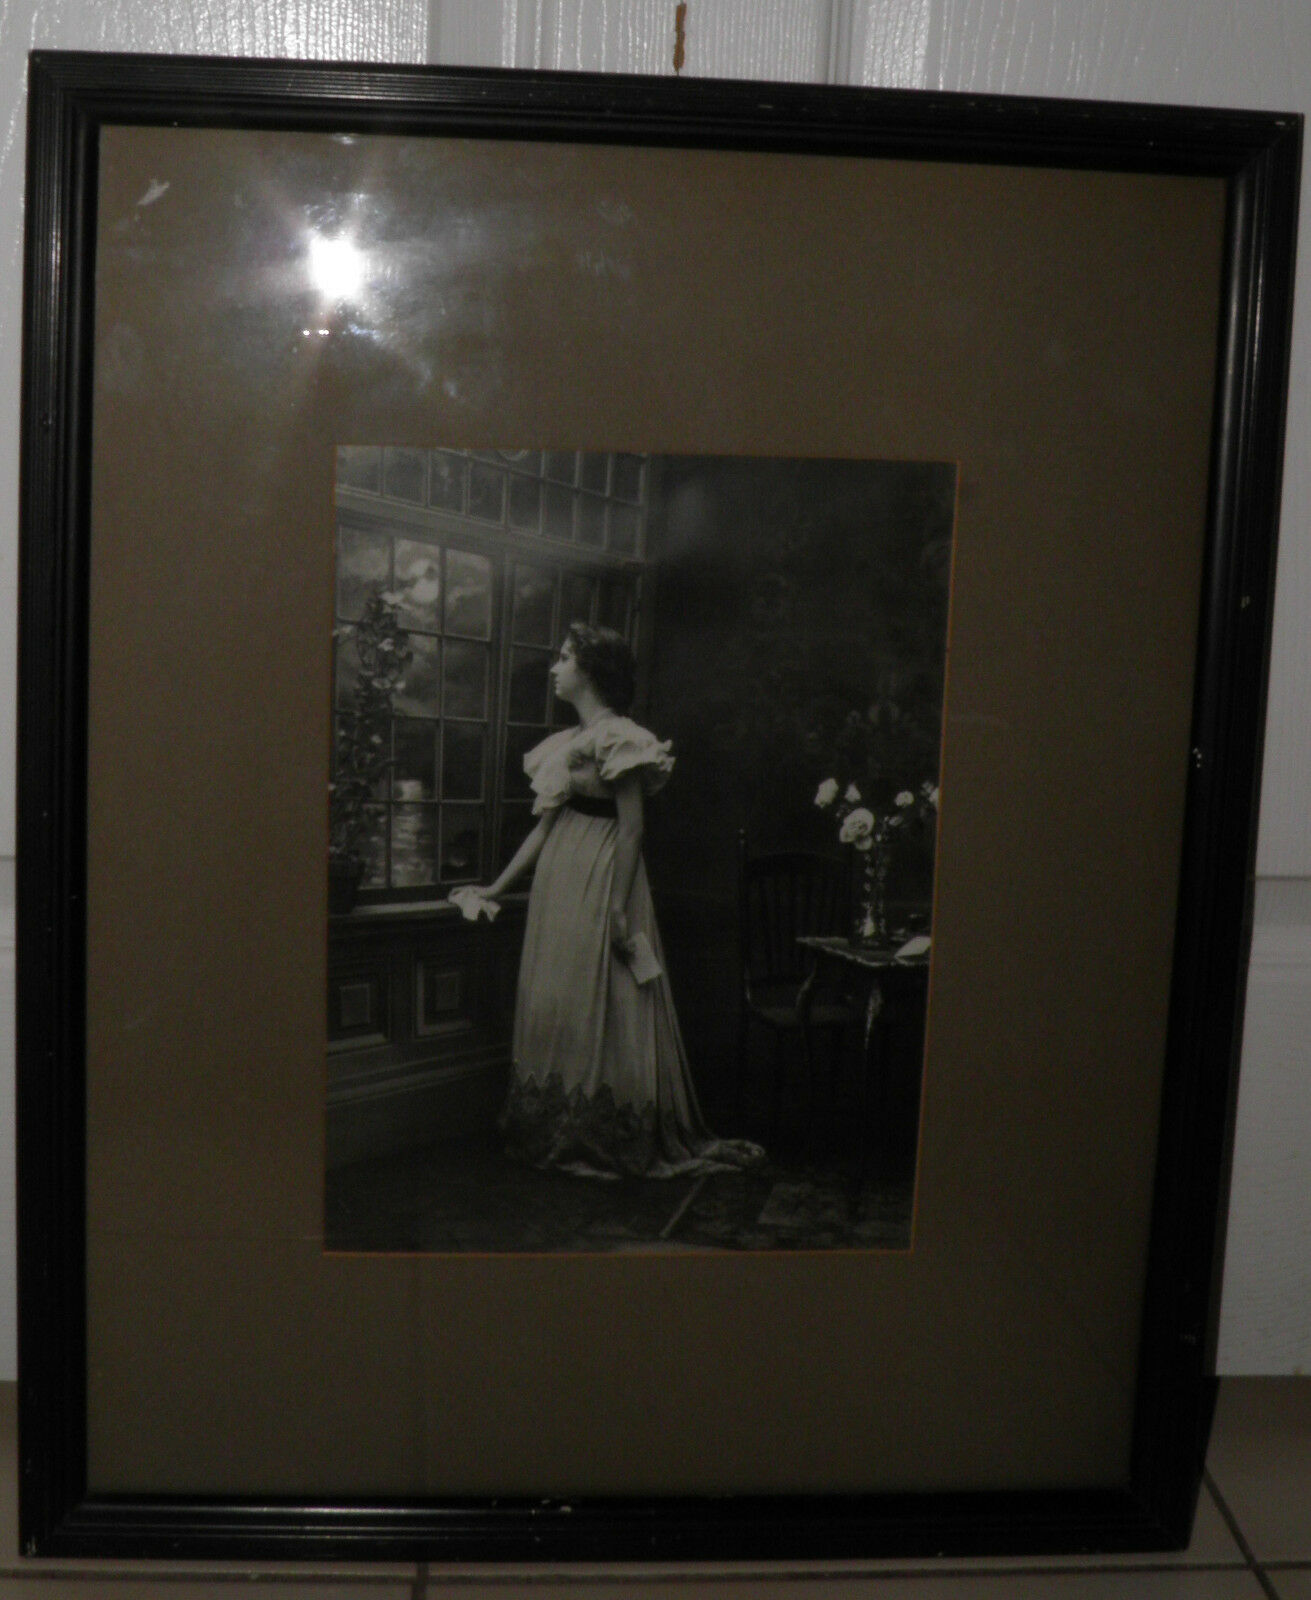 Antique Day Dreamer Ullman Mfg.Co.NYC Original Lithograph Print 18x22 Framed - $68.84